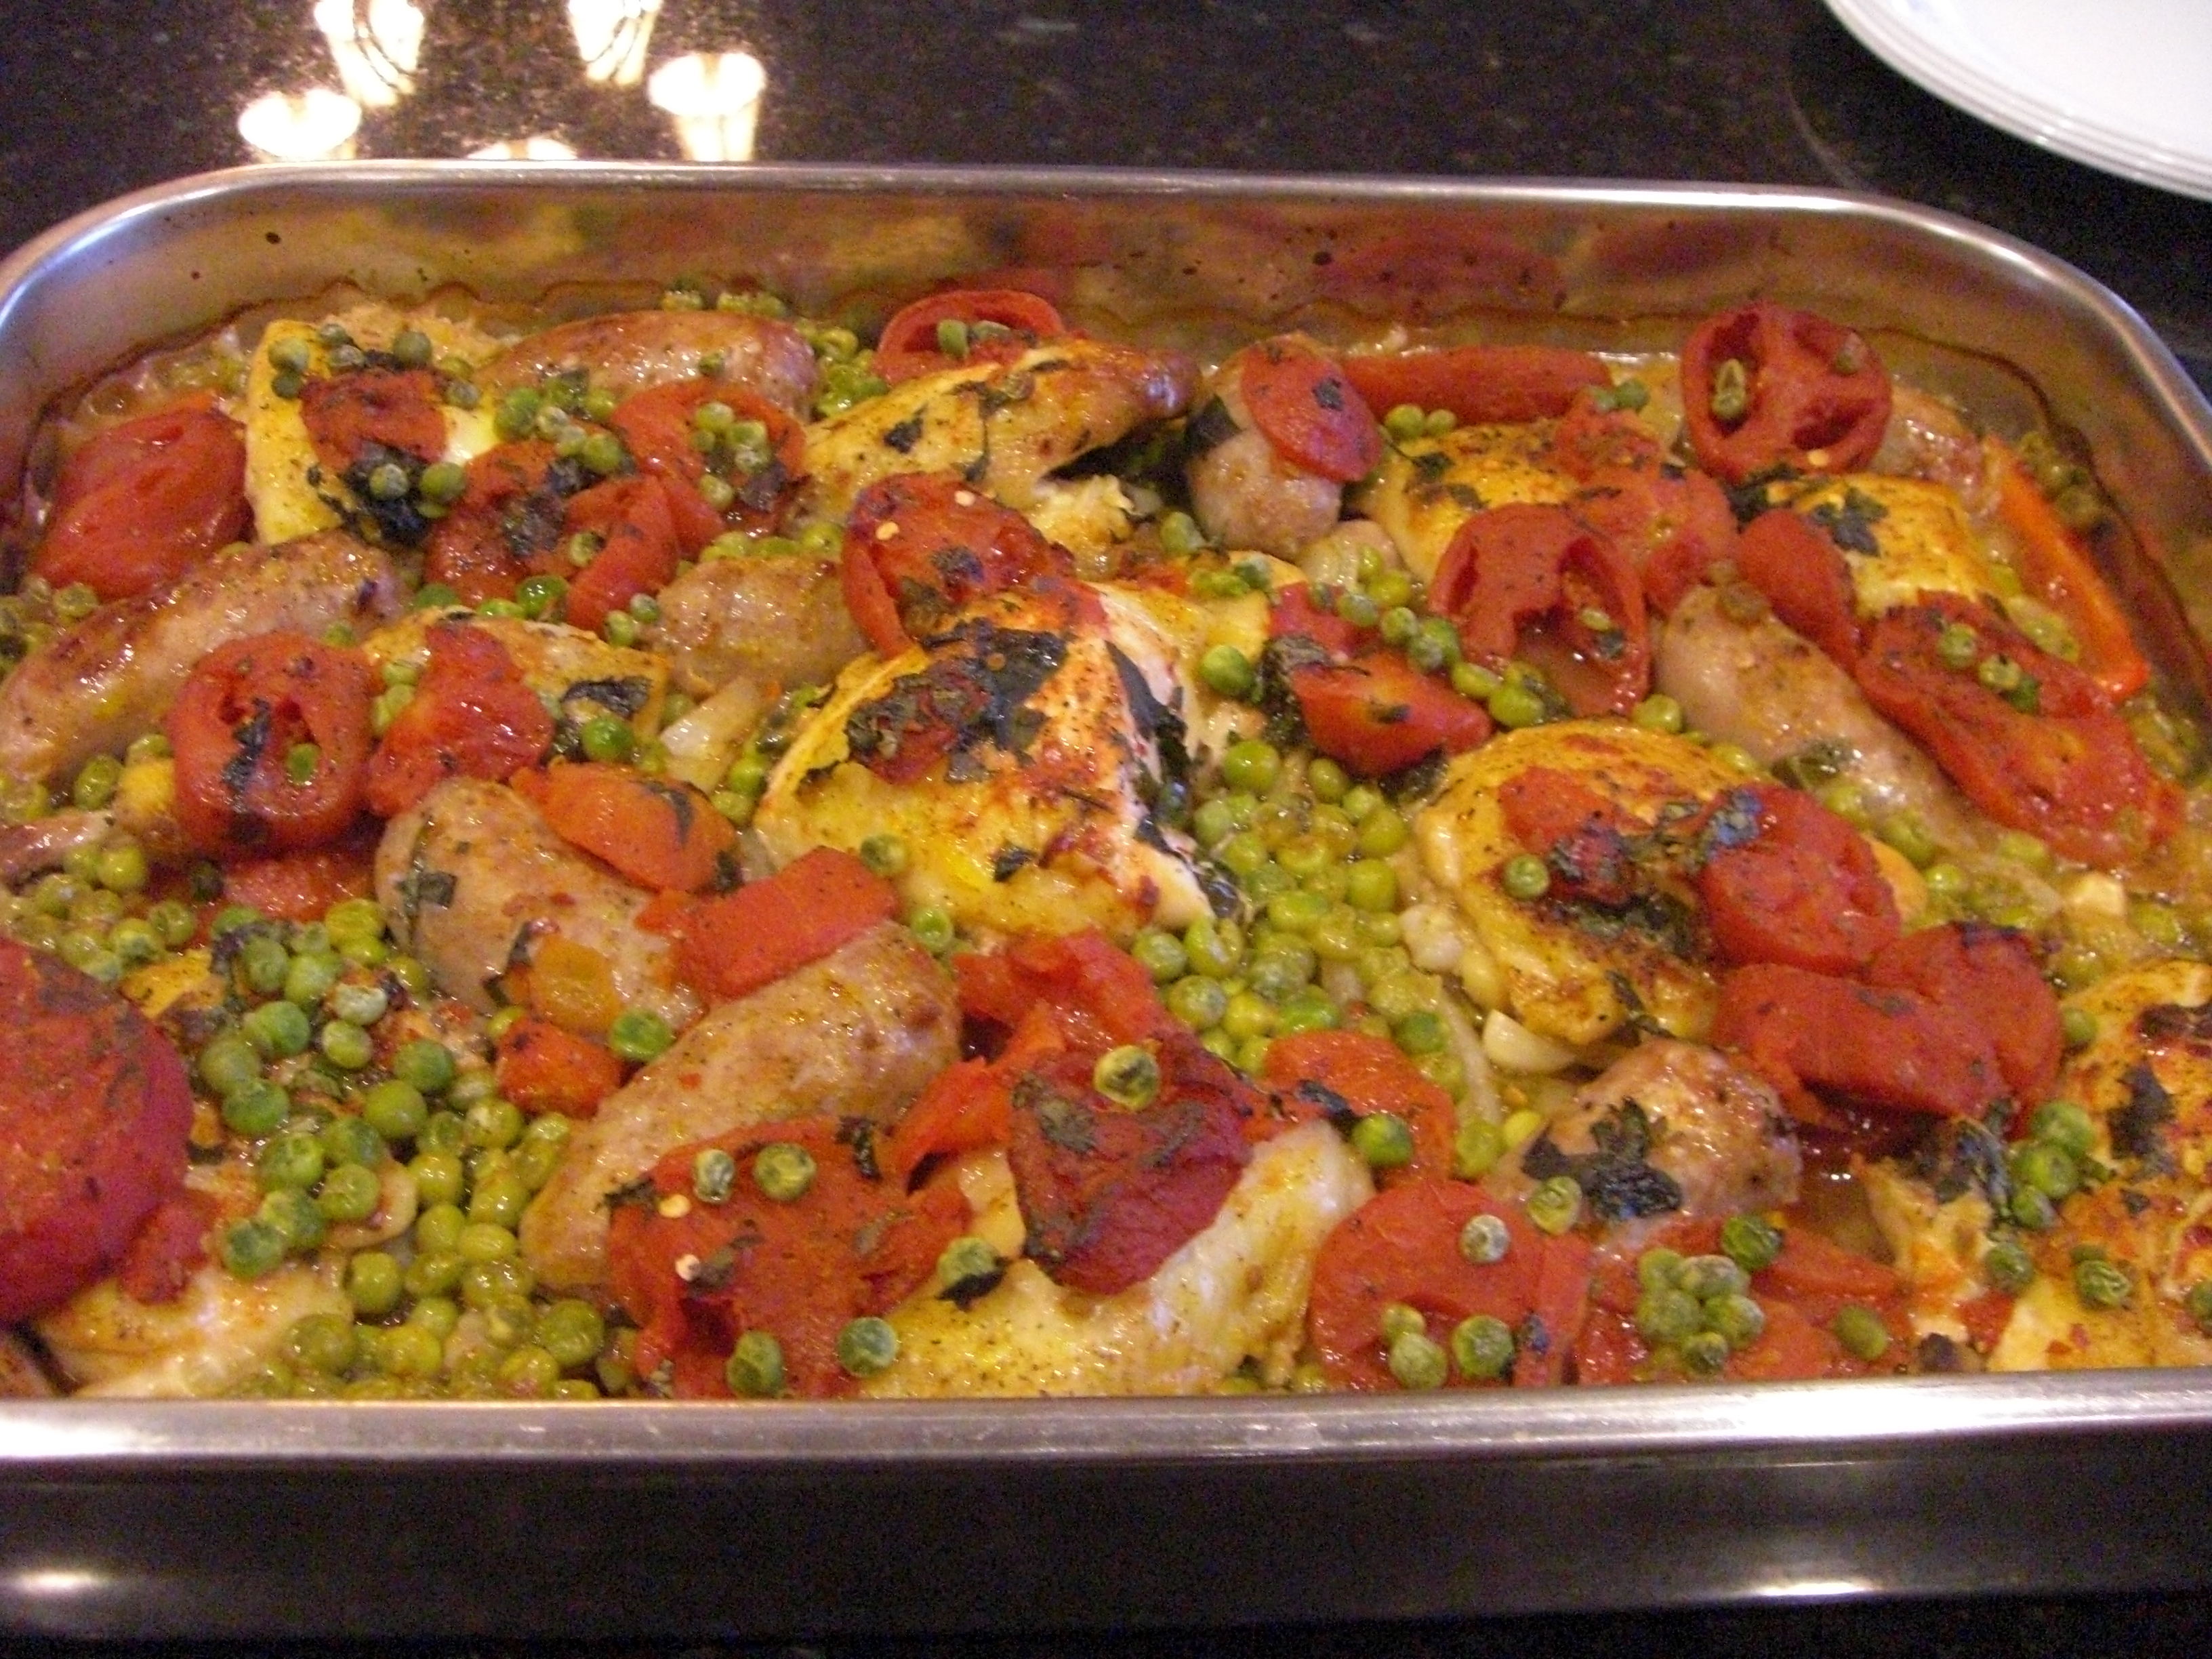 Italian Paella A Simple But Delicious Chicken And Rice Recipe Cooking With Sugar